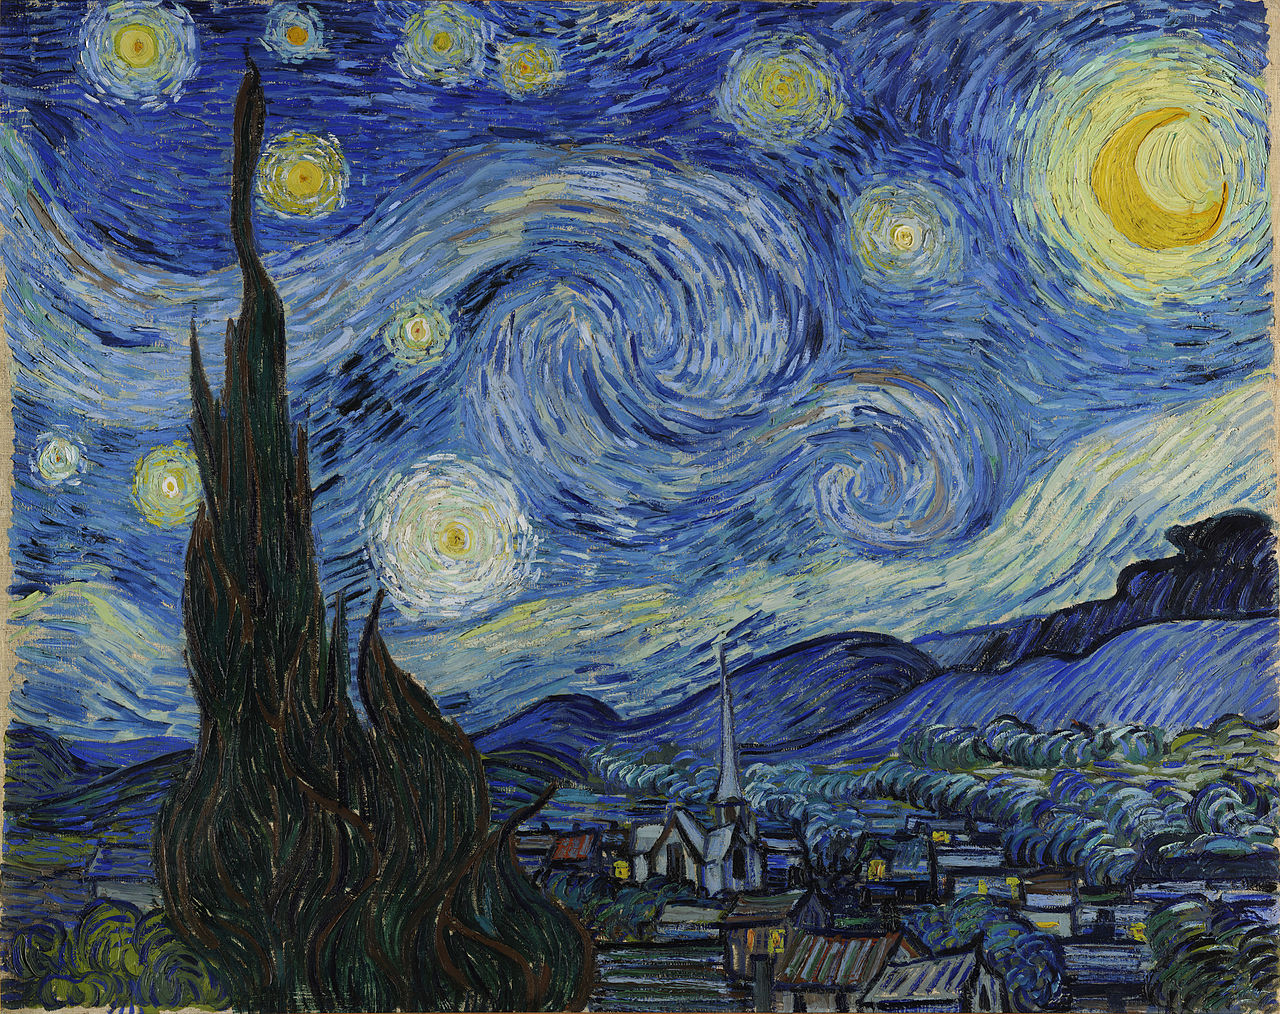 Starry Night, by Vincent van Gogh, 1889 - After its first showing in 1889 at ..., this painting has gone on to become one of the most iconic images in history.